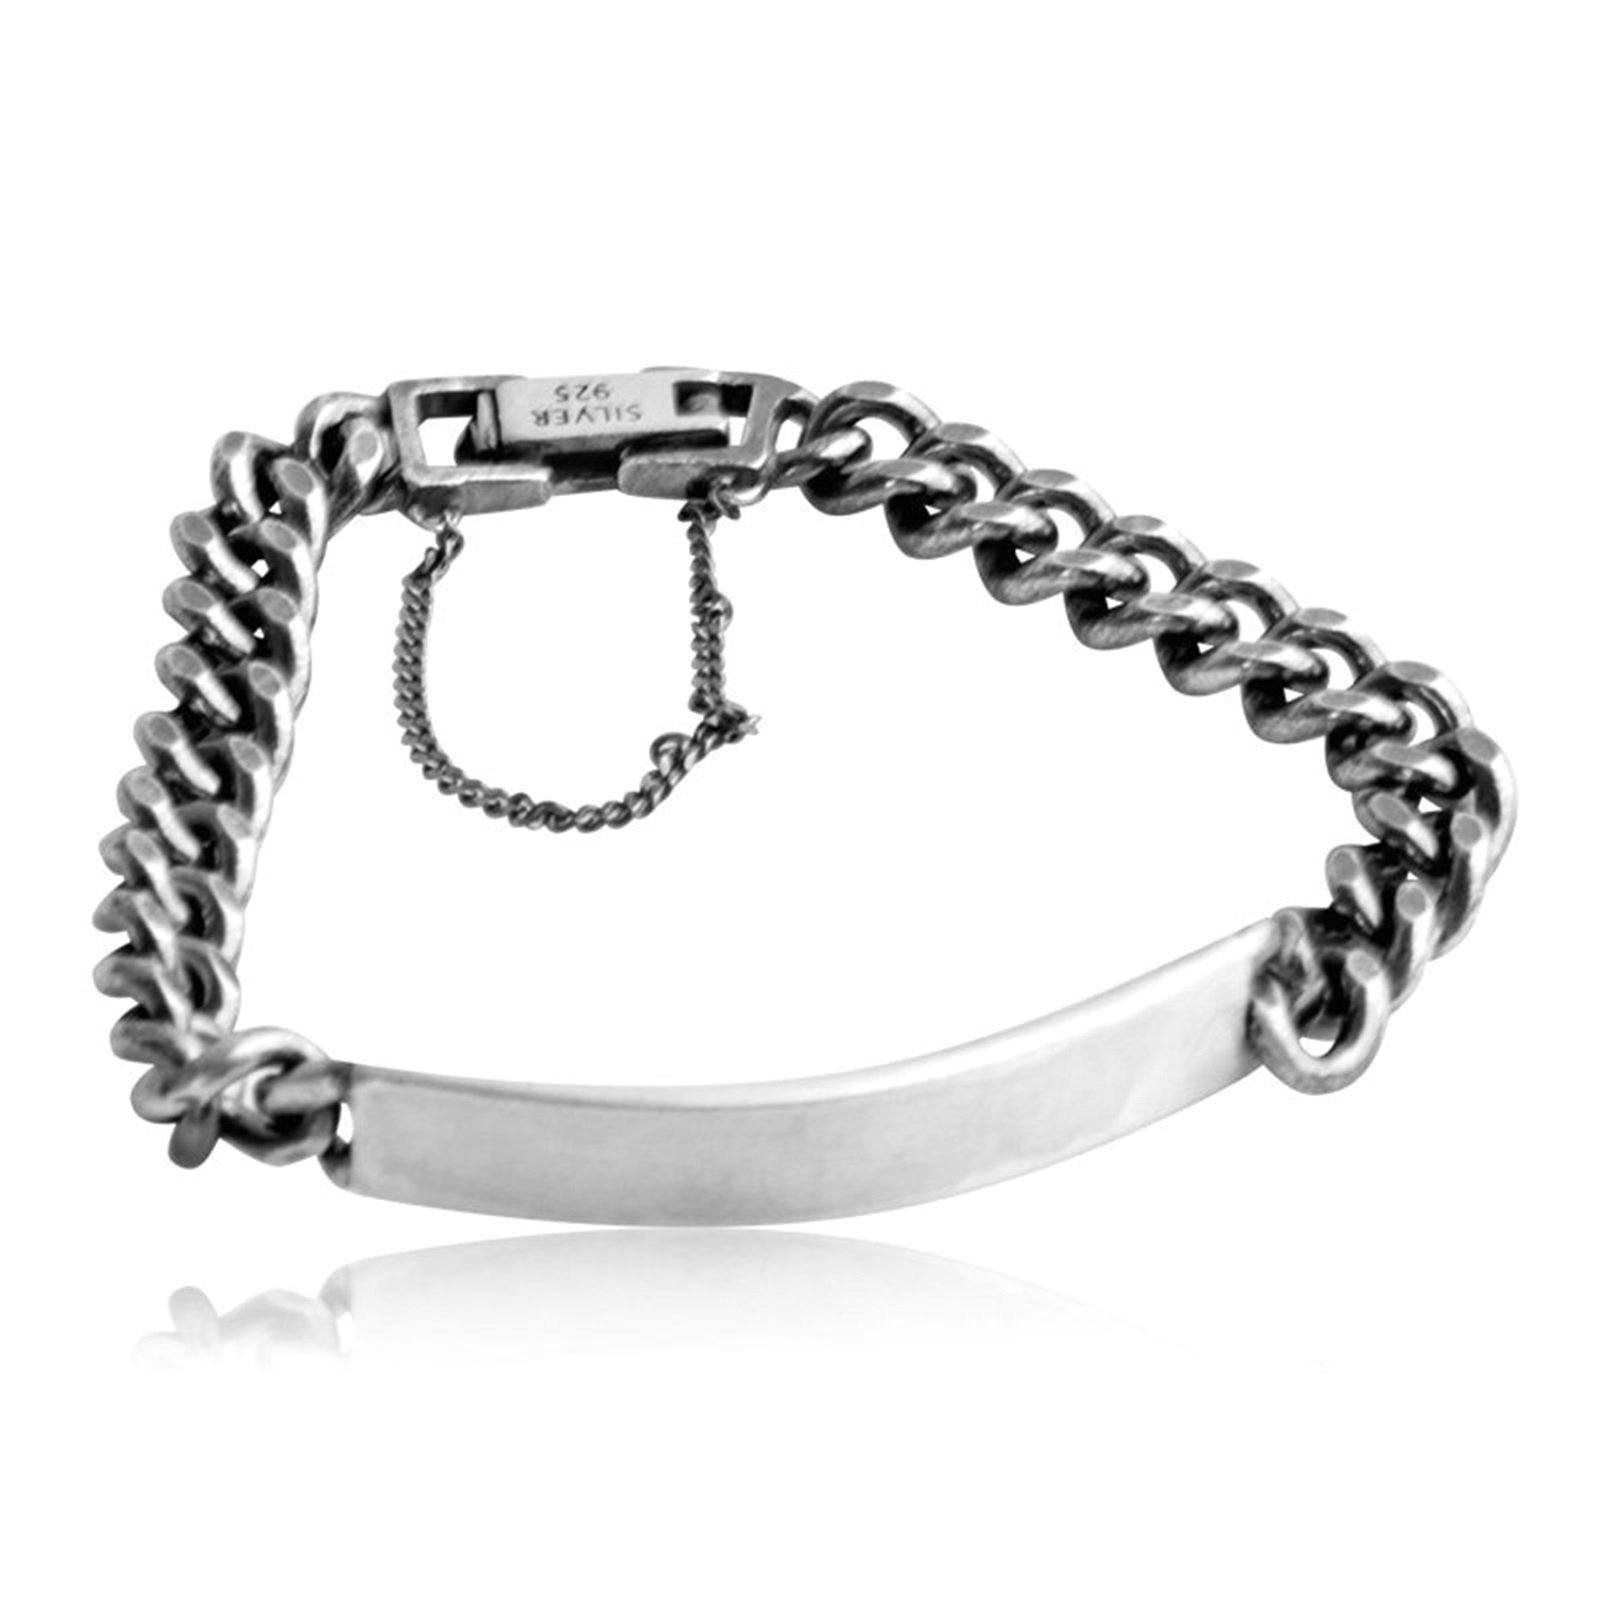 Daesar 925 Silver Bracelet For Men Curved Chain Shape Bracelet Silver Chain Length:17CM